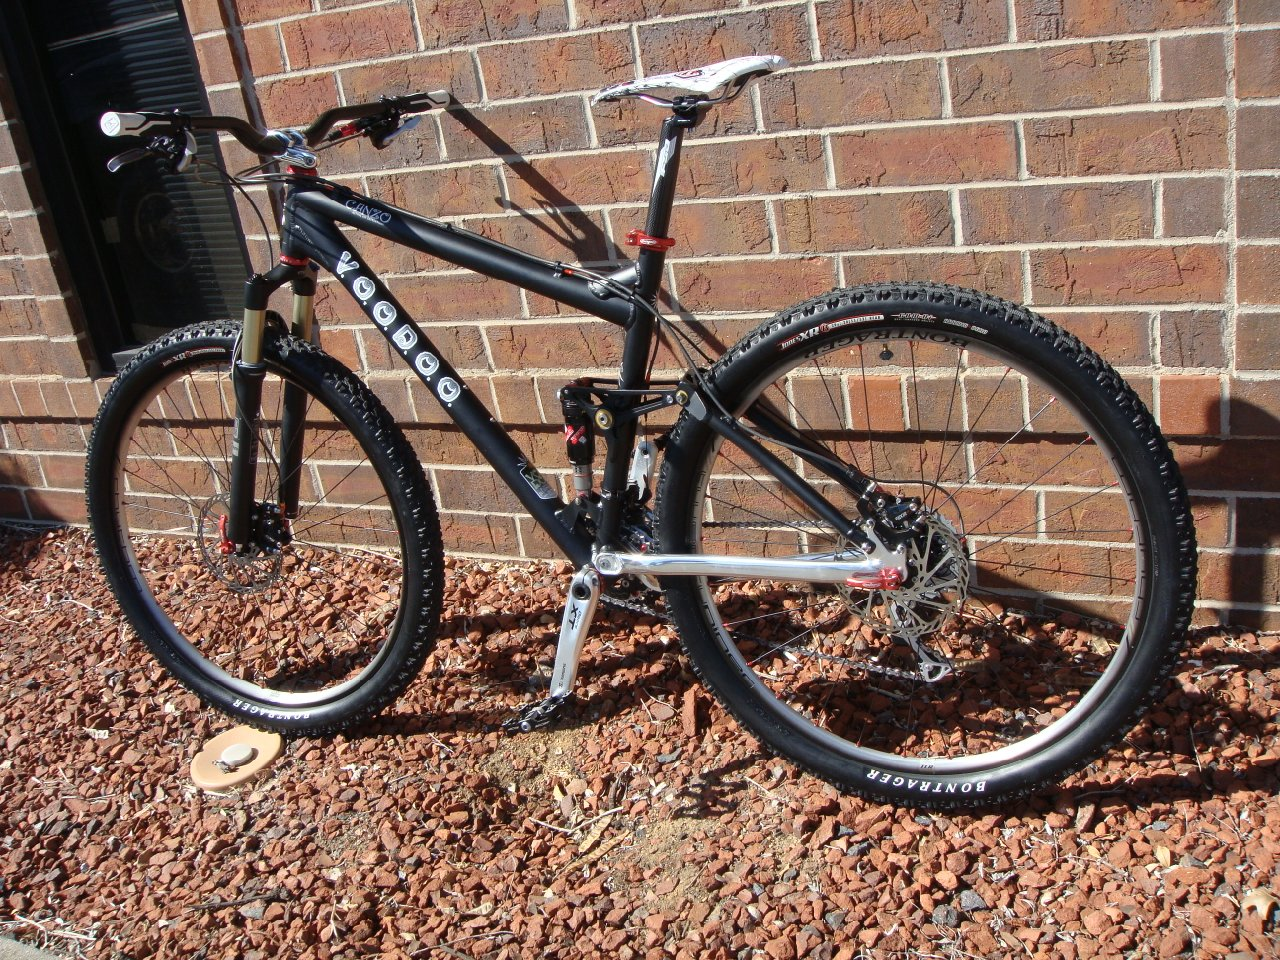 Can We Start a New Post Pictures of your 29er Thread?-voodoo%252029%2520bike%25202010%2520045.jpg